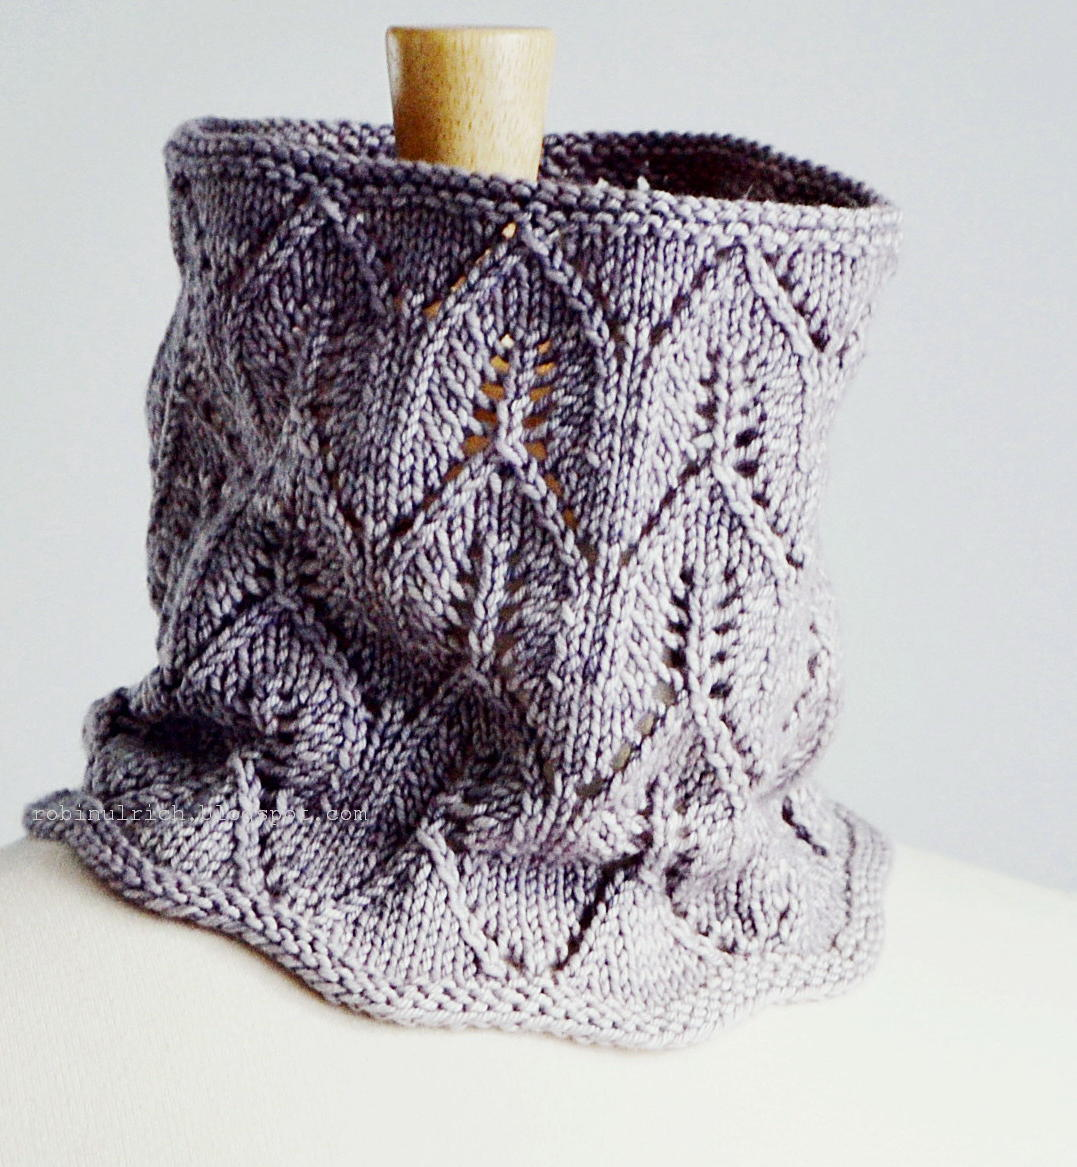 New Knitting Patterns : Robin Ulrich Studio: New Knitting Pattern - Greyhaven